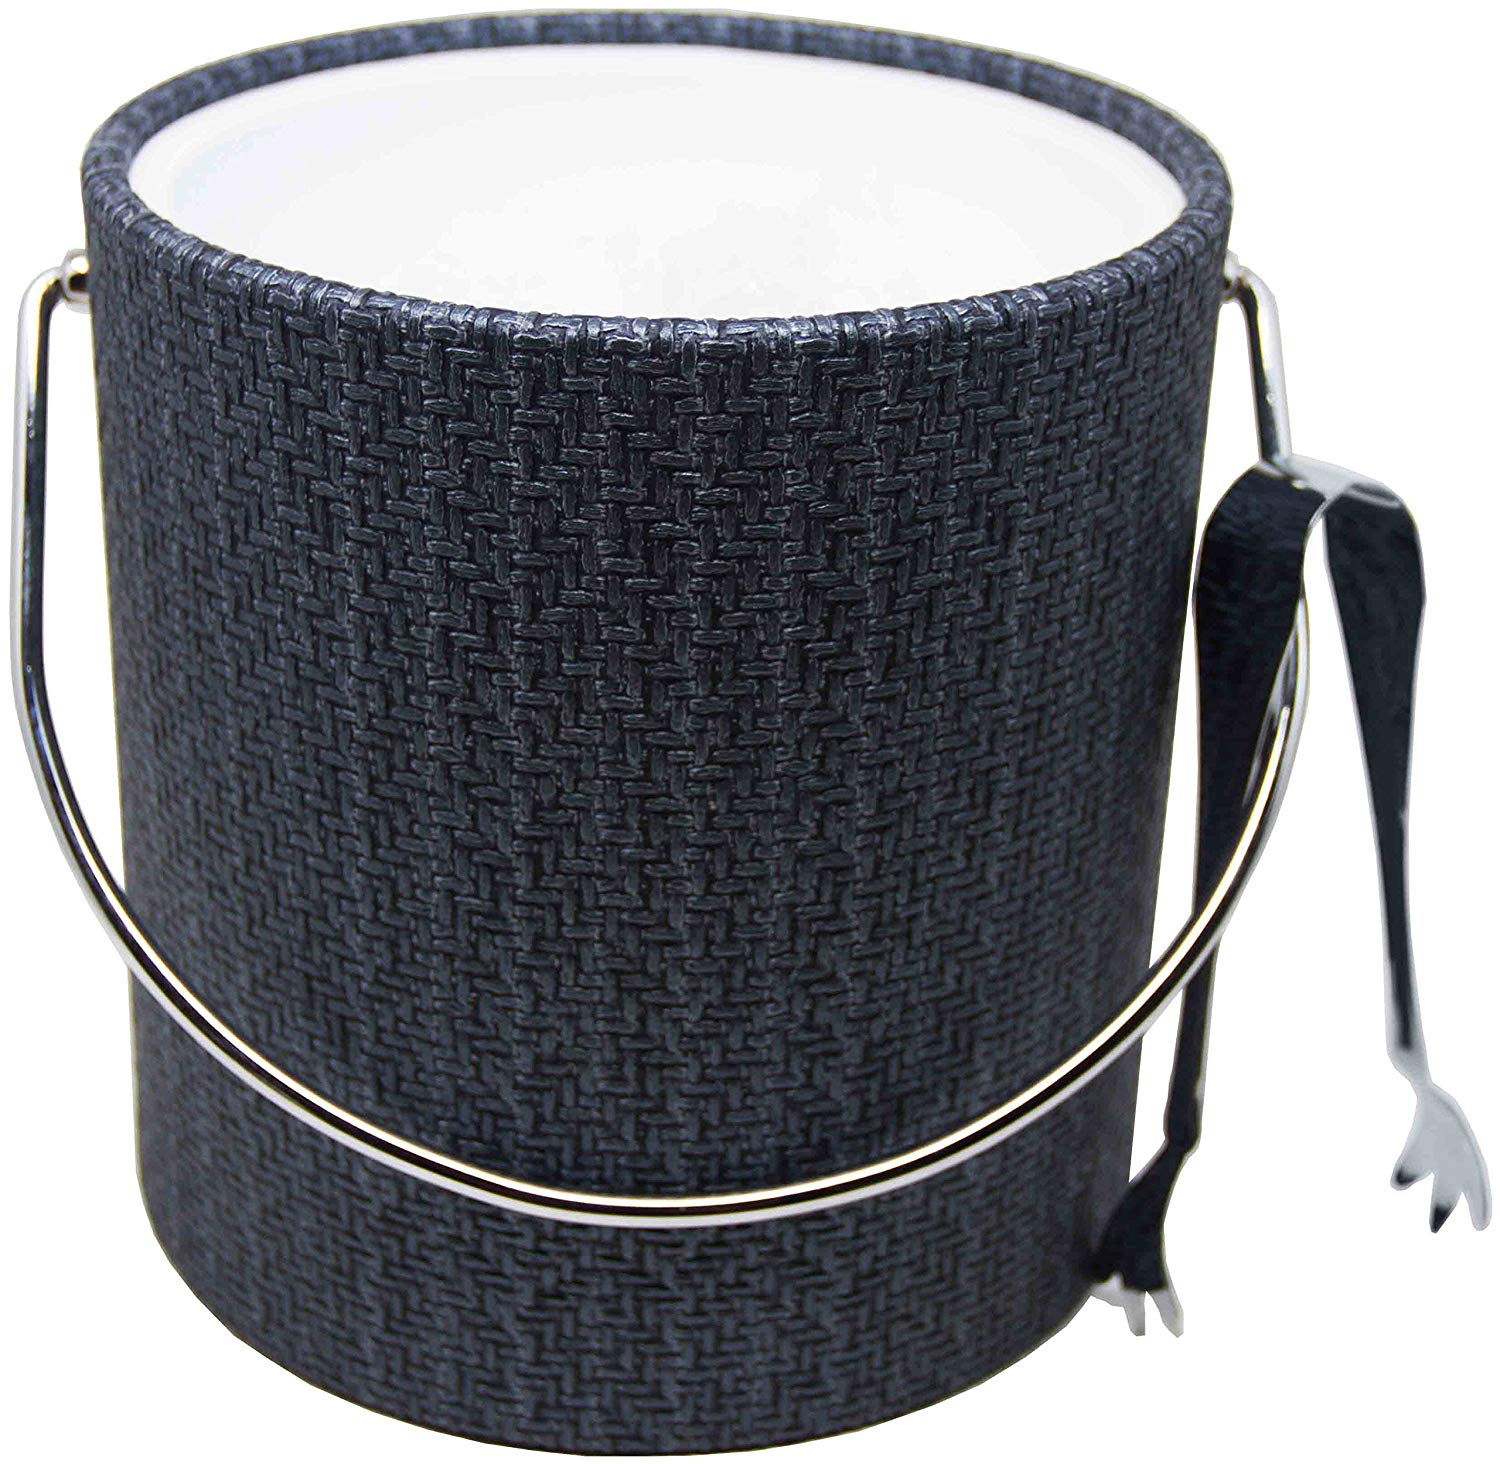 Hand Made In USA Blue Metallic Double Walled 3-Quart Wicker Insulated Ice Bucket With Bonus Ice Tongs